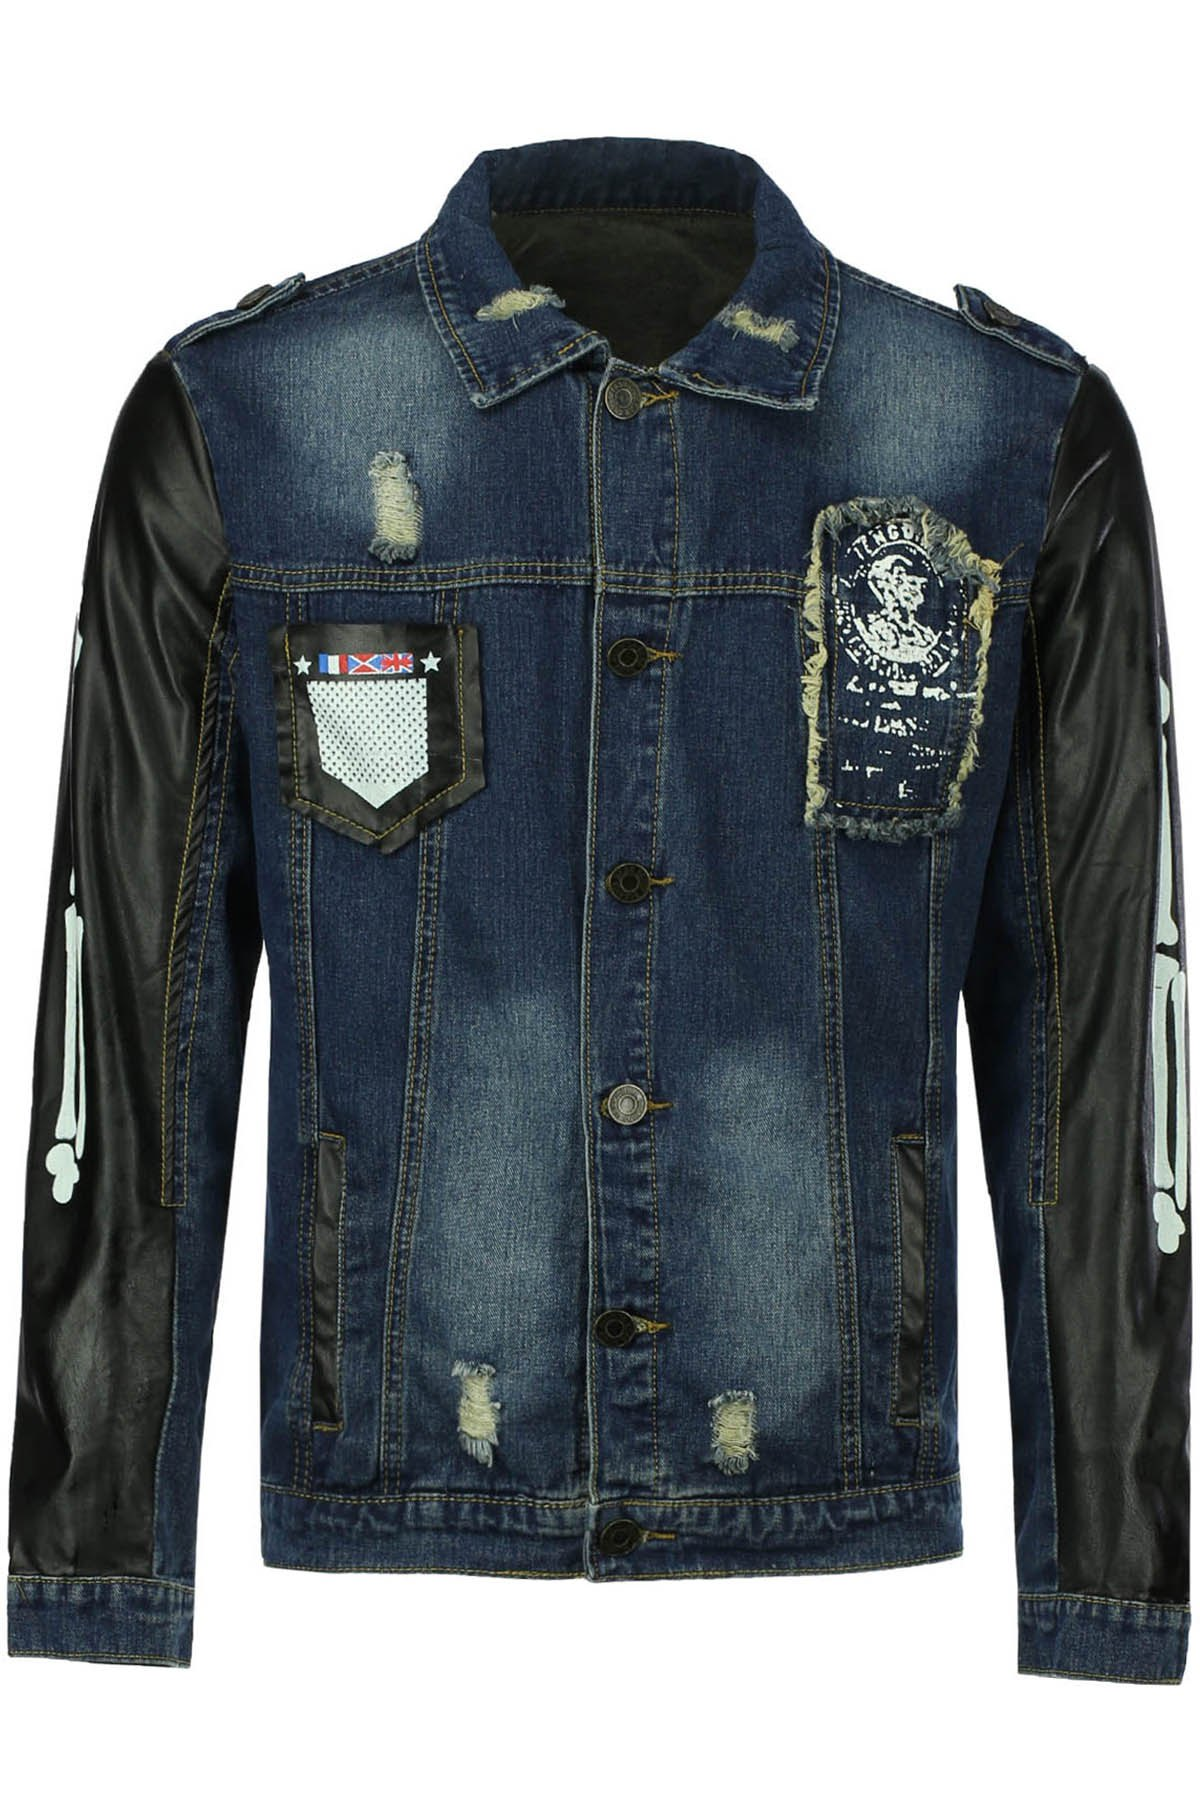 Turn-Down Collar Applique Embellished PU-Leather Splicing Long Sleeve Men's Denim Coat - BLUE 2XL